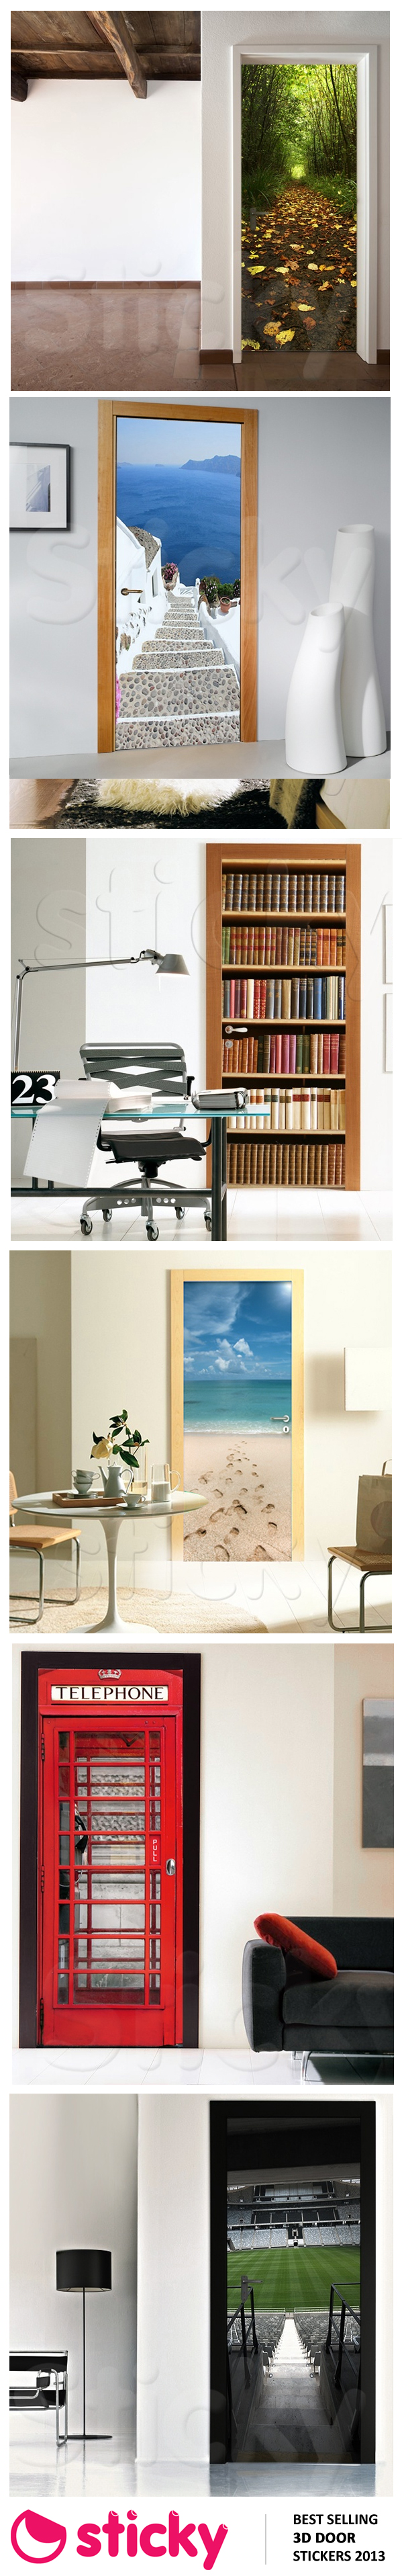 STICKY - Our most popular 3D DOOR stickers for 2013 based on sales!